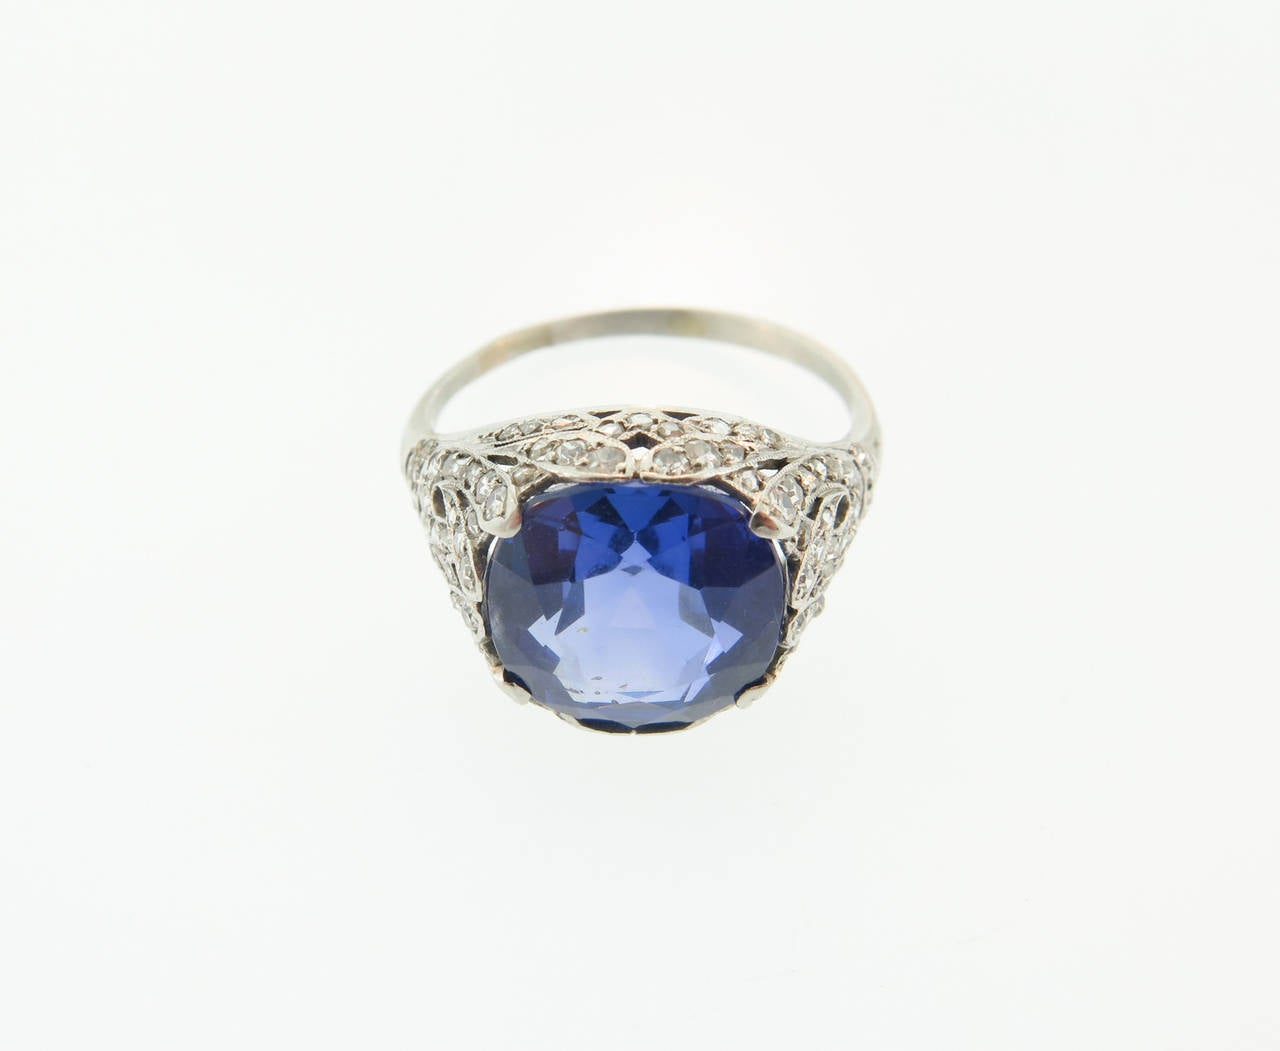 This stunning antique ring 1920's features an elegant filigree design hand-crafted in platinum and set with 69 old-mine diamonds. The center stone is a Natural Round Ceylon Sapphire (unheated) weighing 7.65 carats. The ring does not have any stamps,